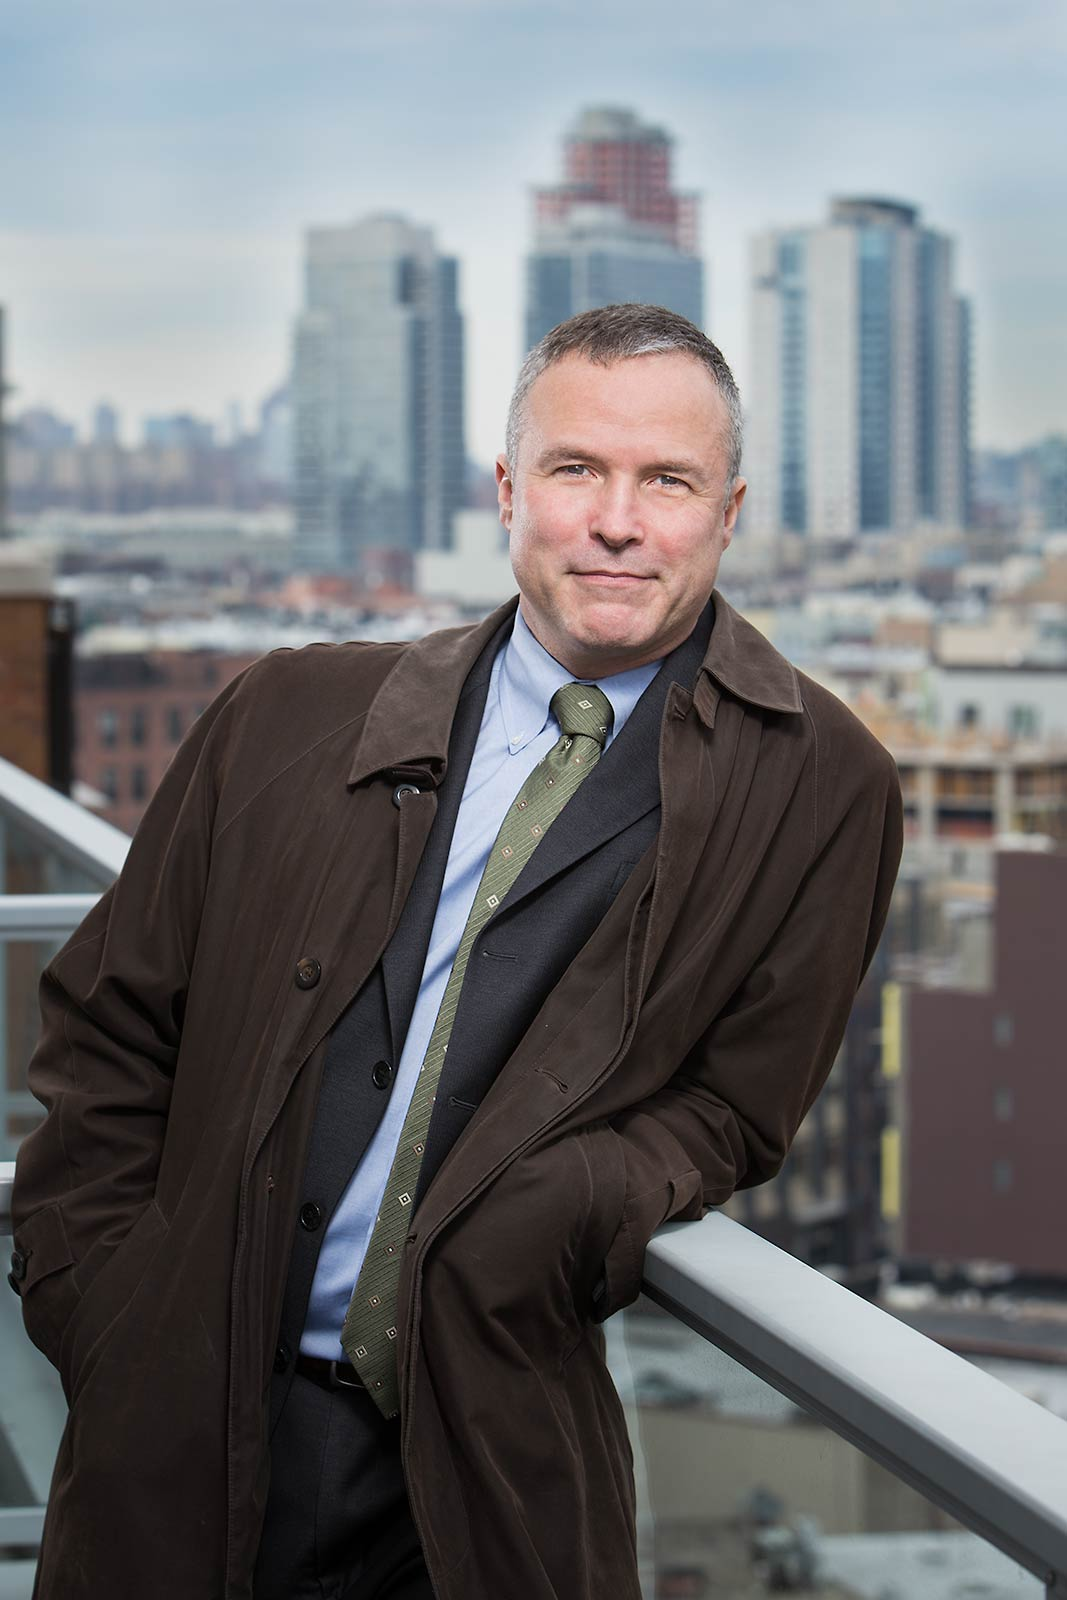 Casual outdoor portrait of doctor on balcony with New York skyline in background